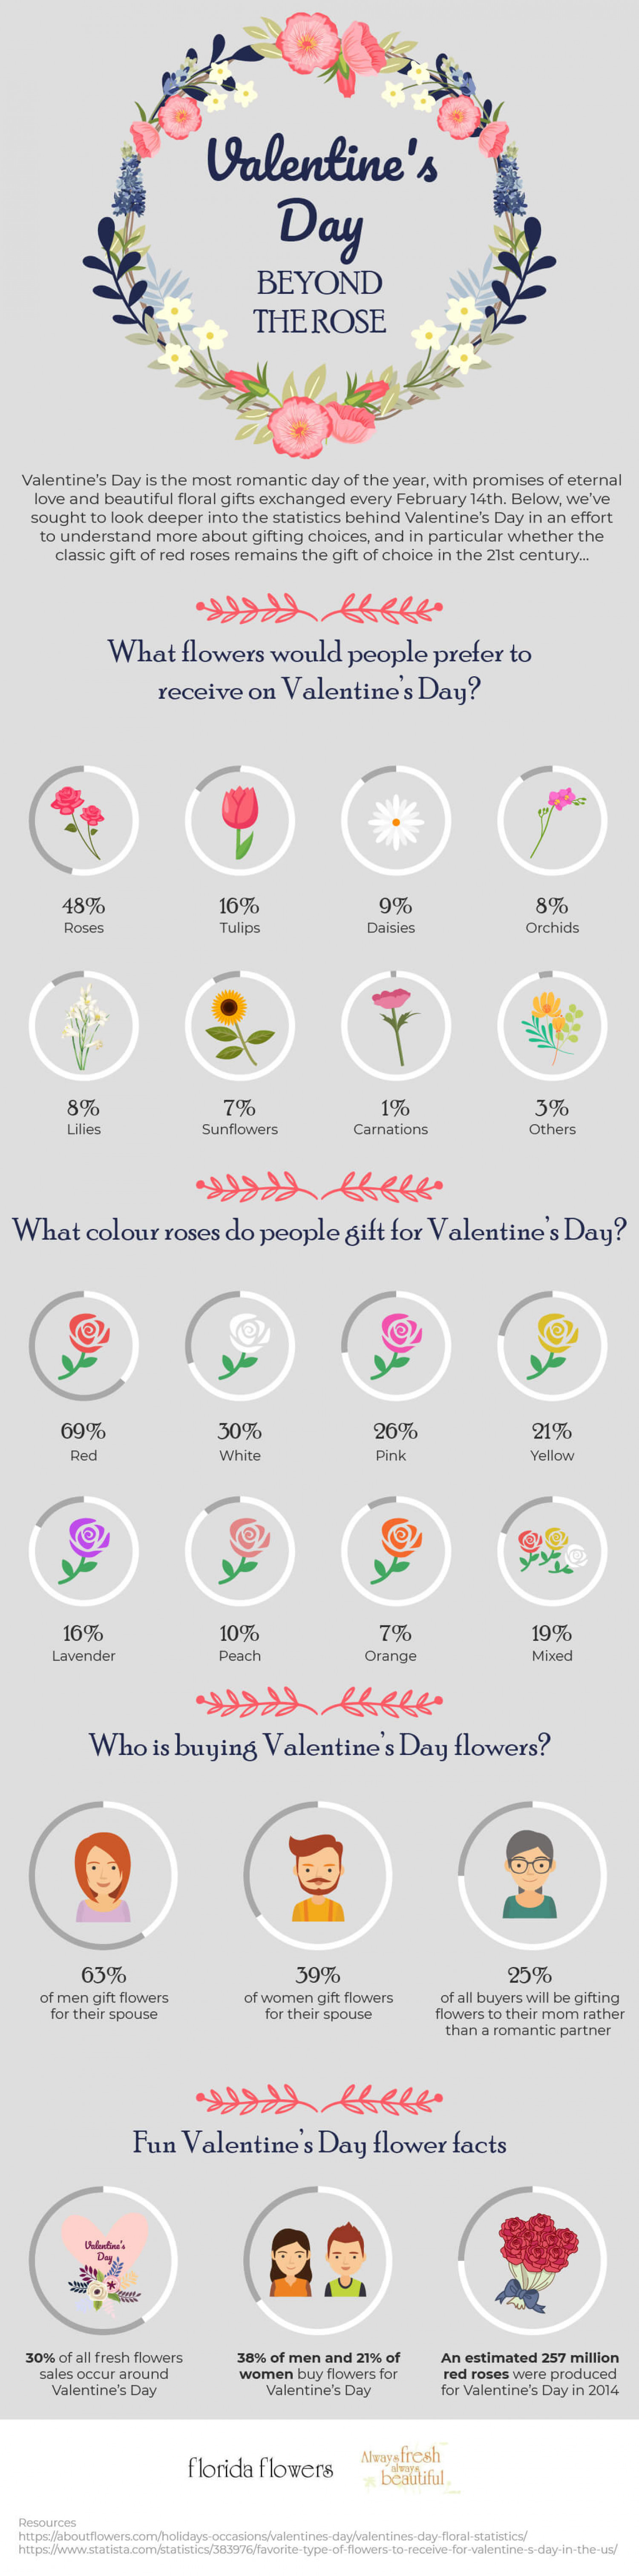 Valentine's Day - Beyond The Roses Infographic